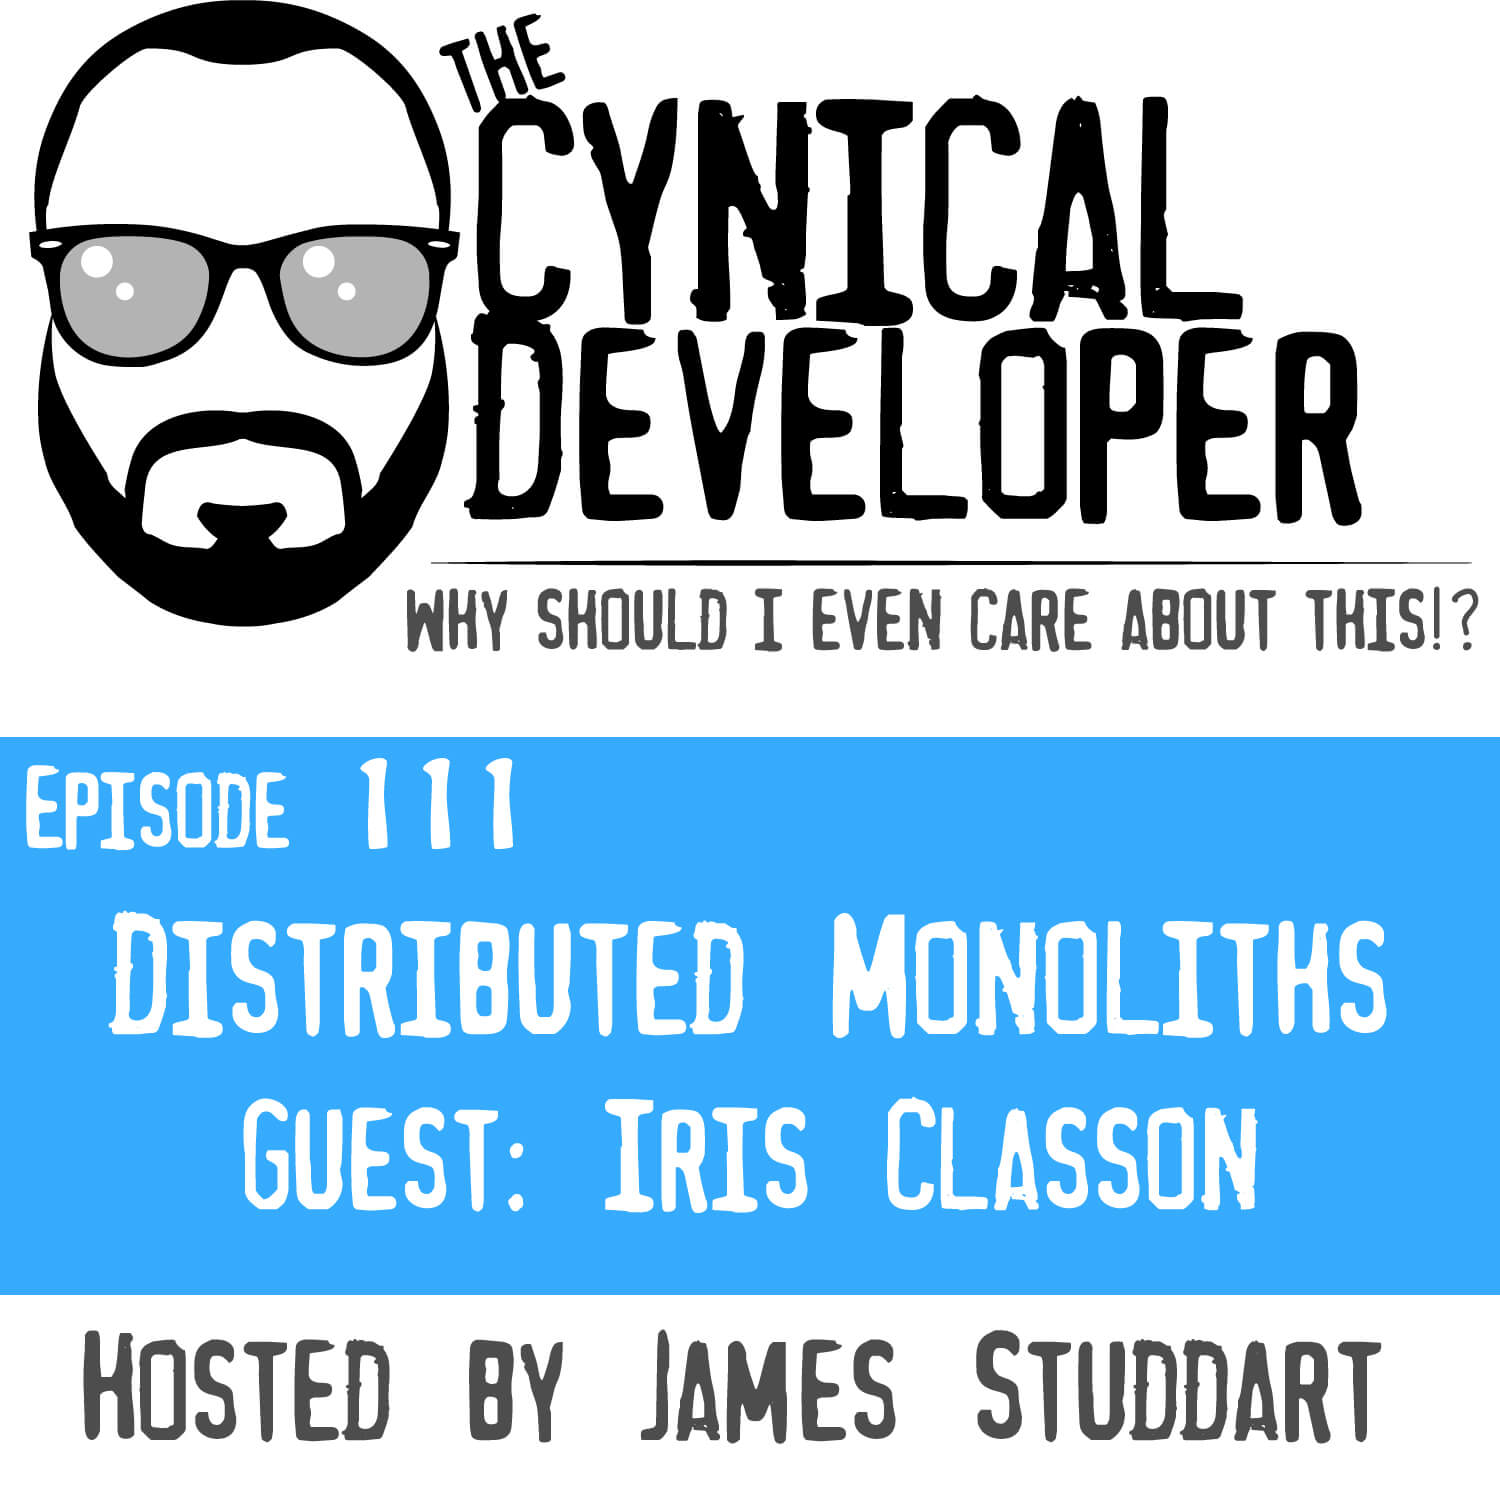 Episode 111 - Distributed Monoliths